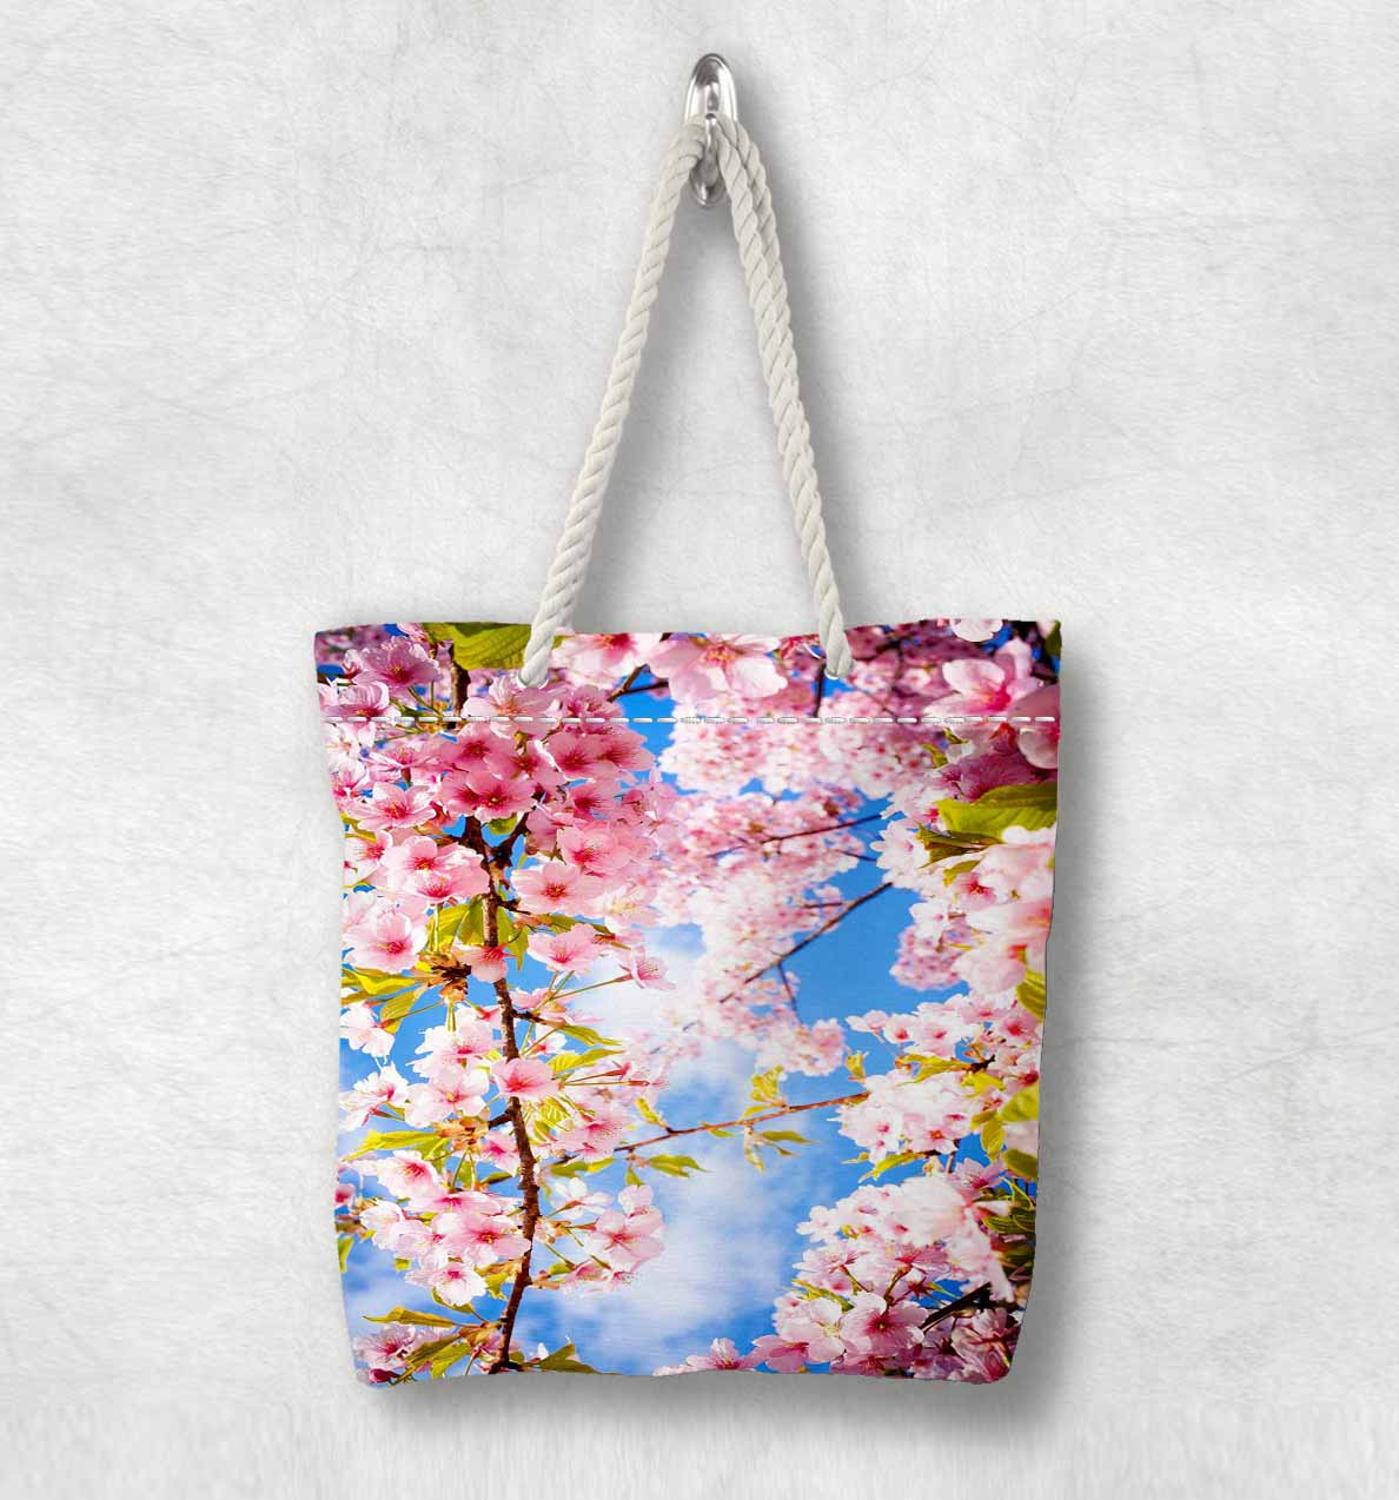 Else Tree Branches On Pink Flowers Floral New Fashion White Rope Handle Canvas Bag Cotton Canvas Zippered Tote Bag Shoulder Bag